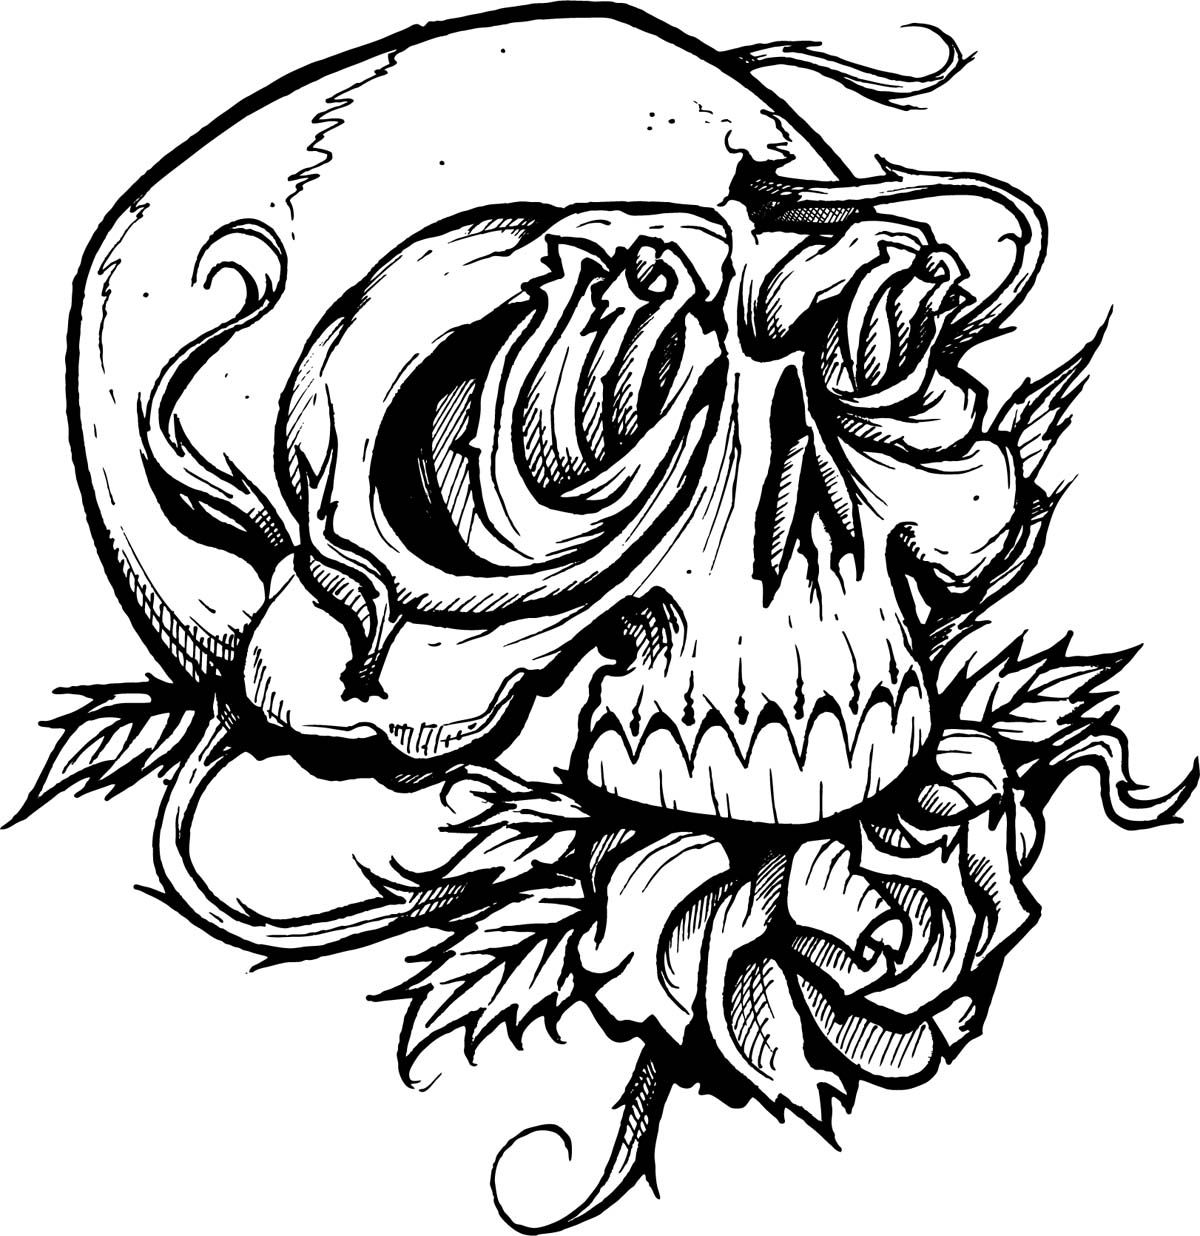 Tattoo Coloring Pages Tattoo Coloring Pages Best Coloring Pages Free Printable Tattoo Coloring Skull Coloring Pages Halloween Coloring Pages Halloween Coloring